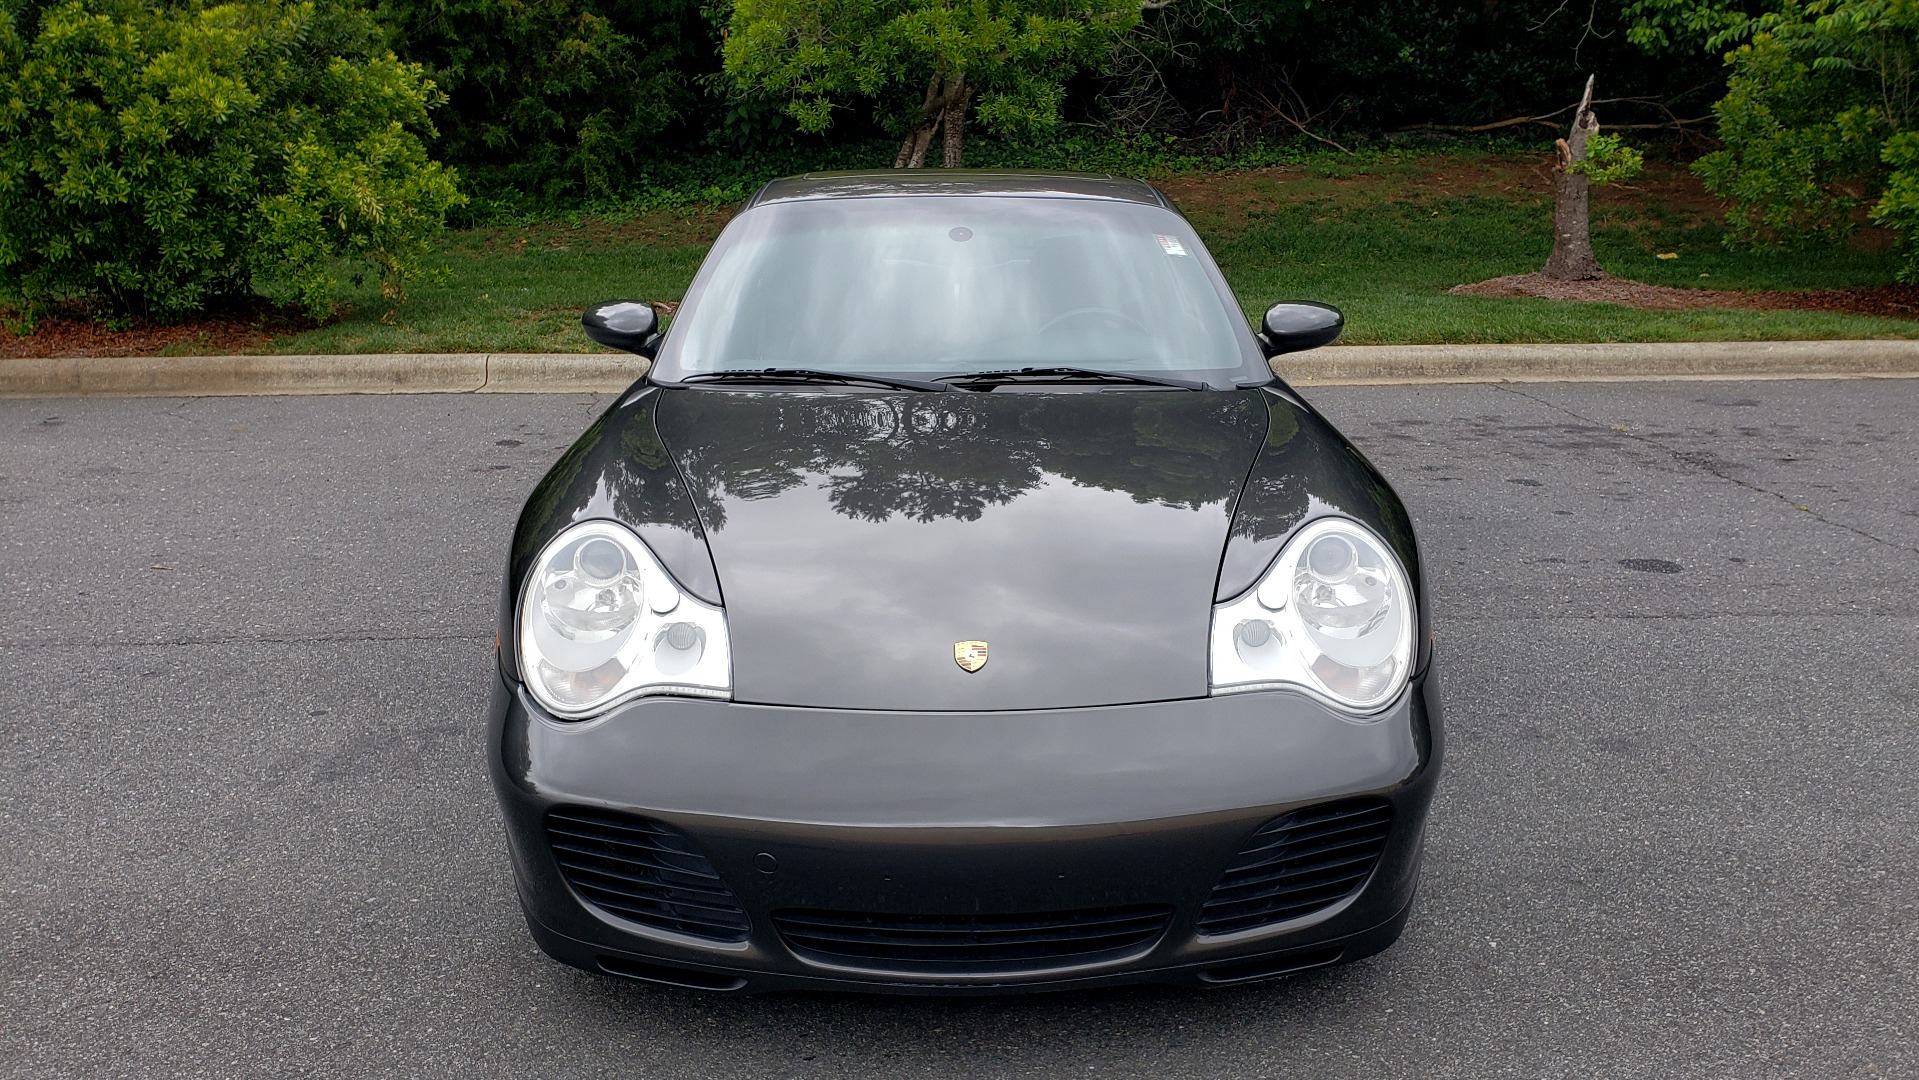 Used 2002 Porsche 911 CARRERA TURBO COUPE / 6-SPD MANUAL / PERF UPGRADES & CUSTOM TUNE for sale Sold at Formula Imports in Charlotte NC 28227 20